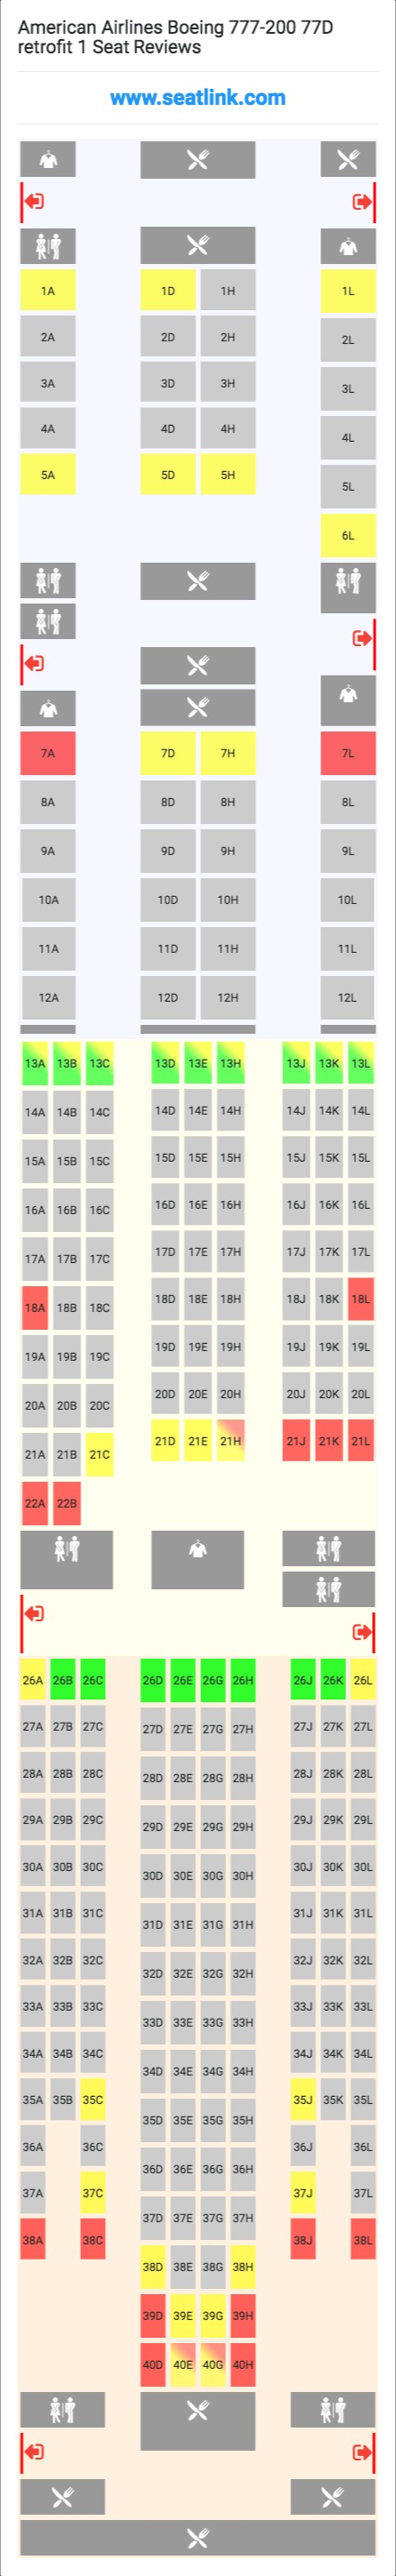 american airlines boeing 777 200 77d retrofit 1 772 seat map